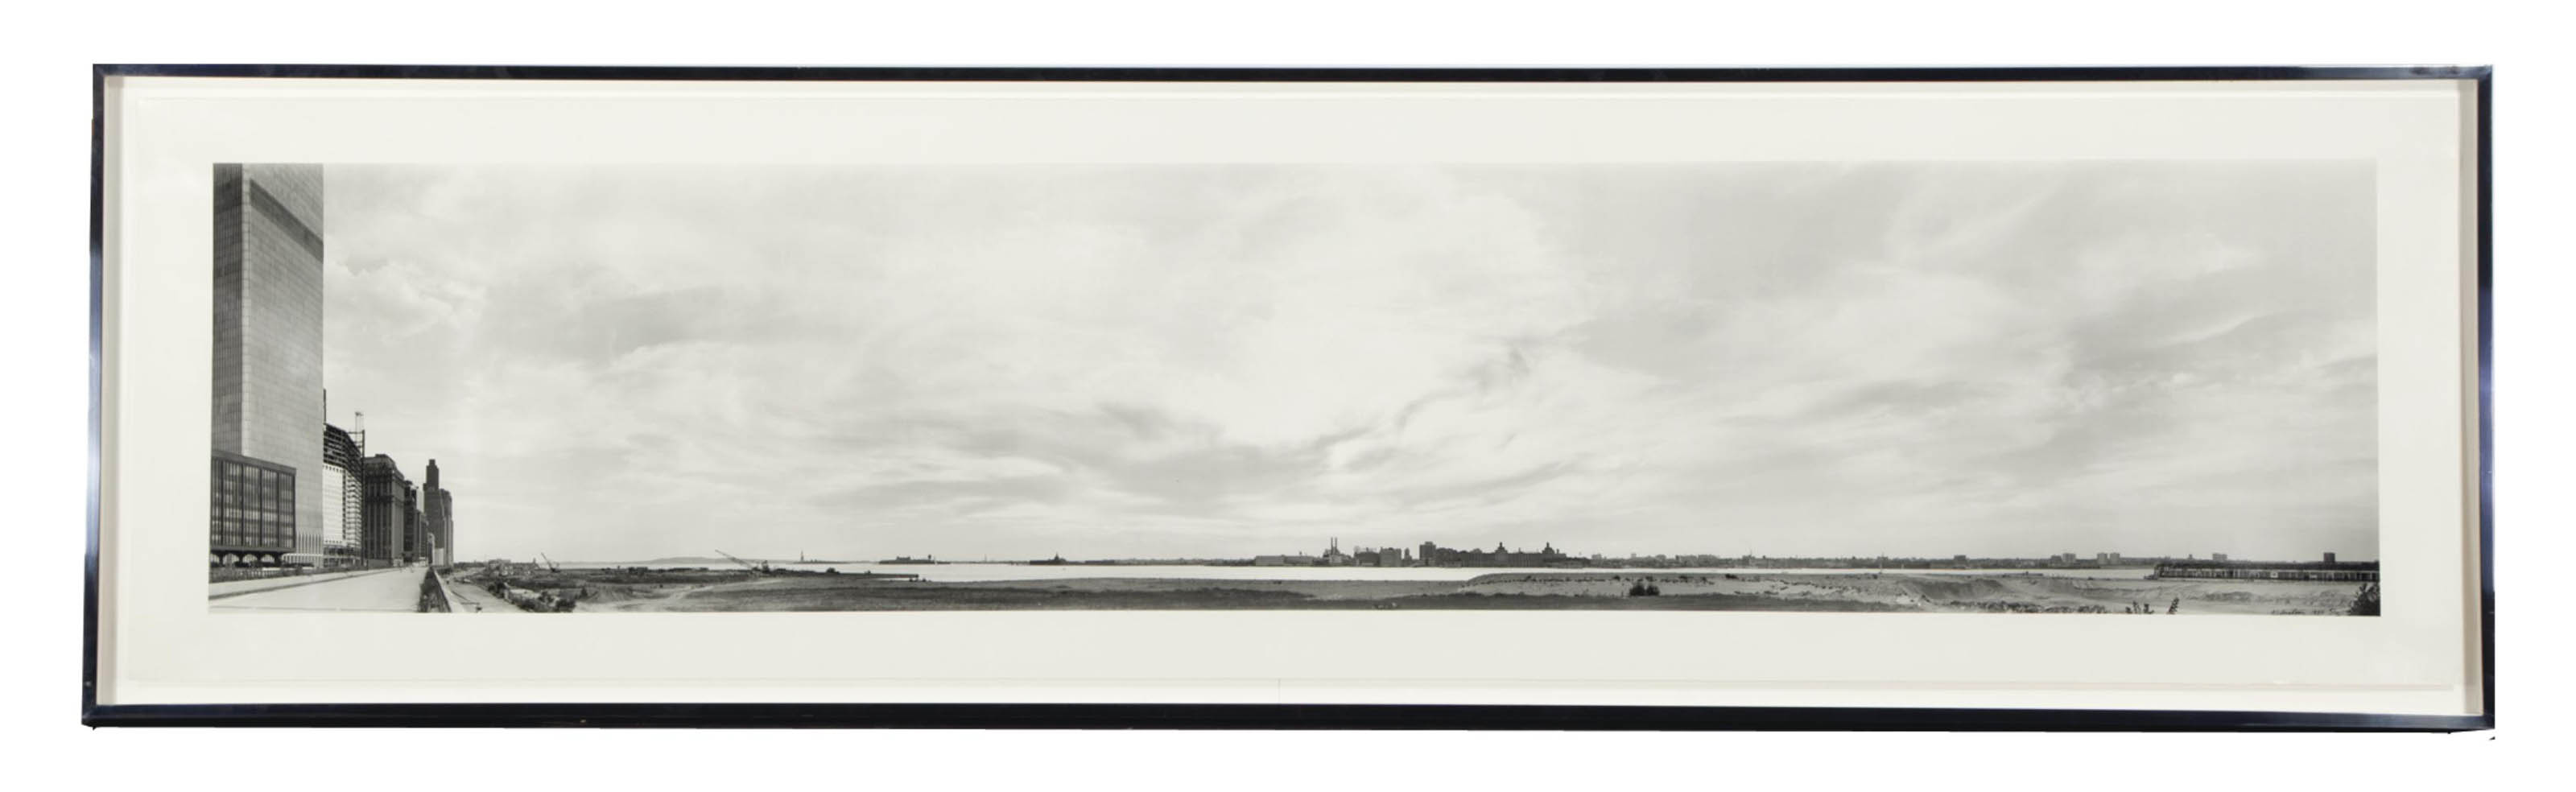 Untitled (NY and Hudson River with Statue of Liberty), 1980